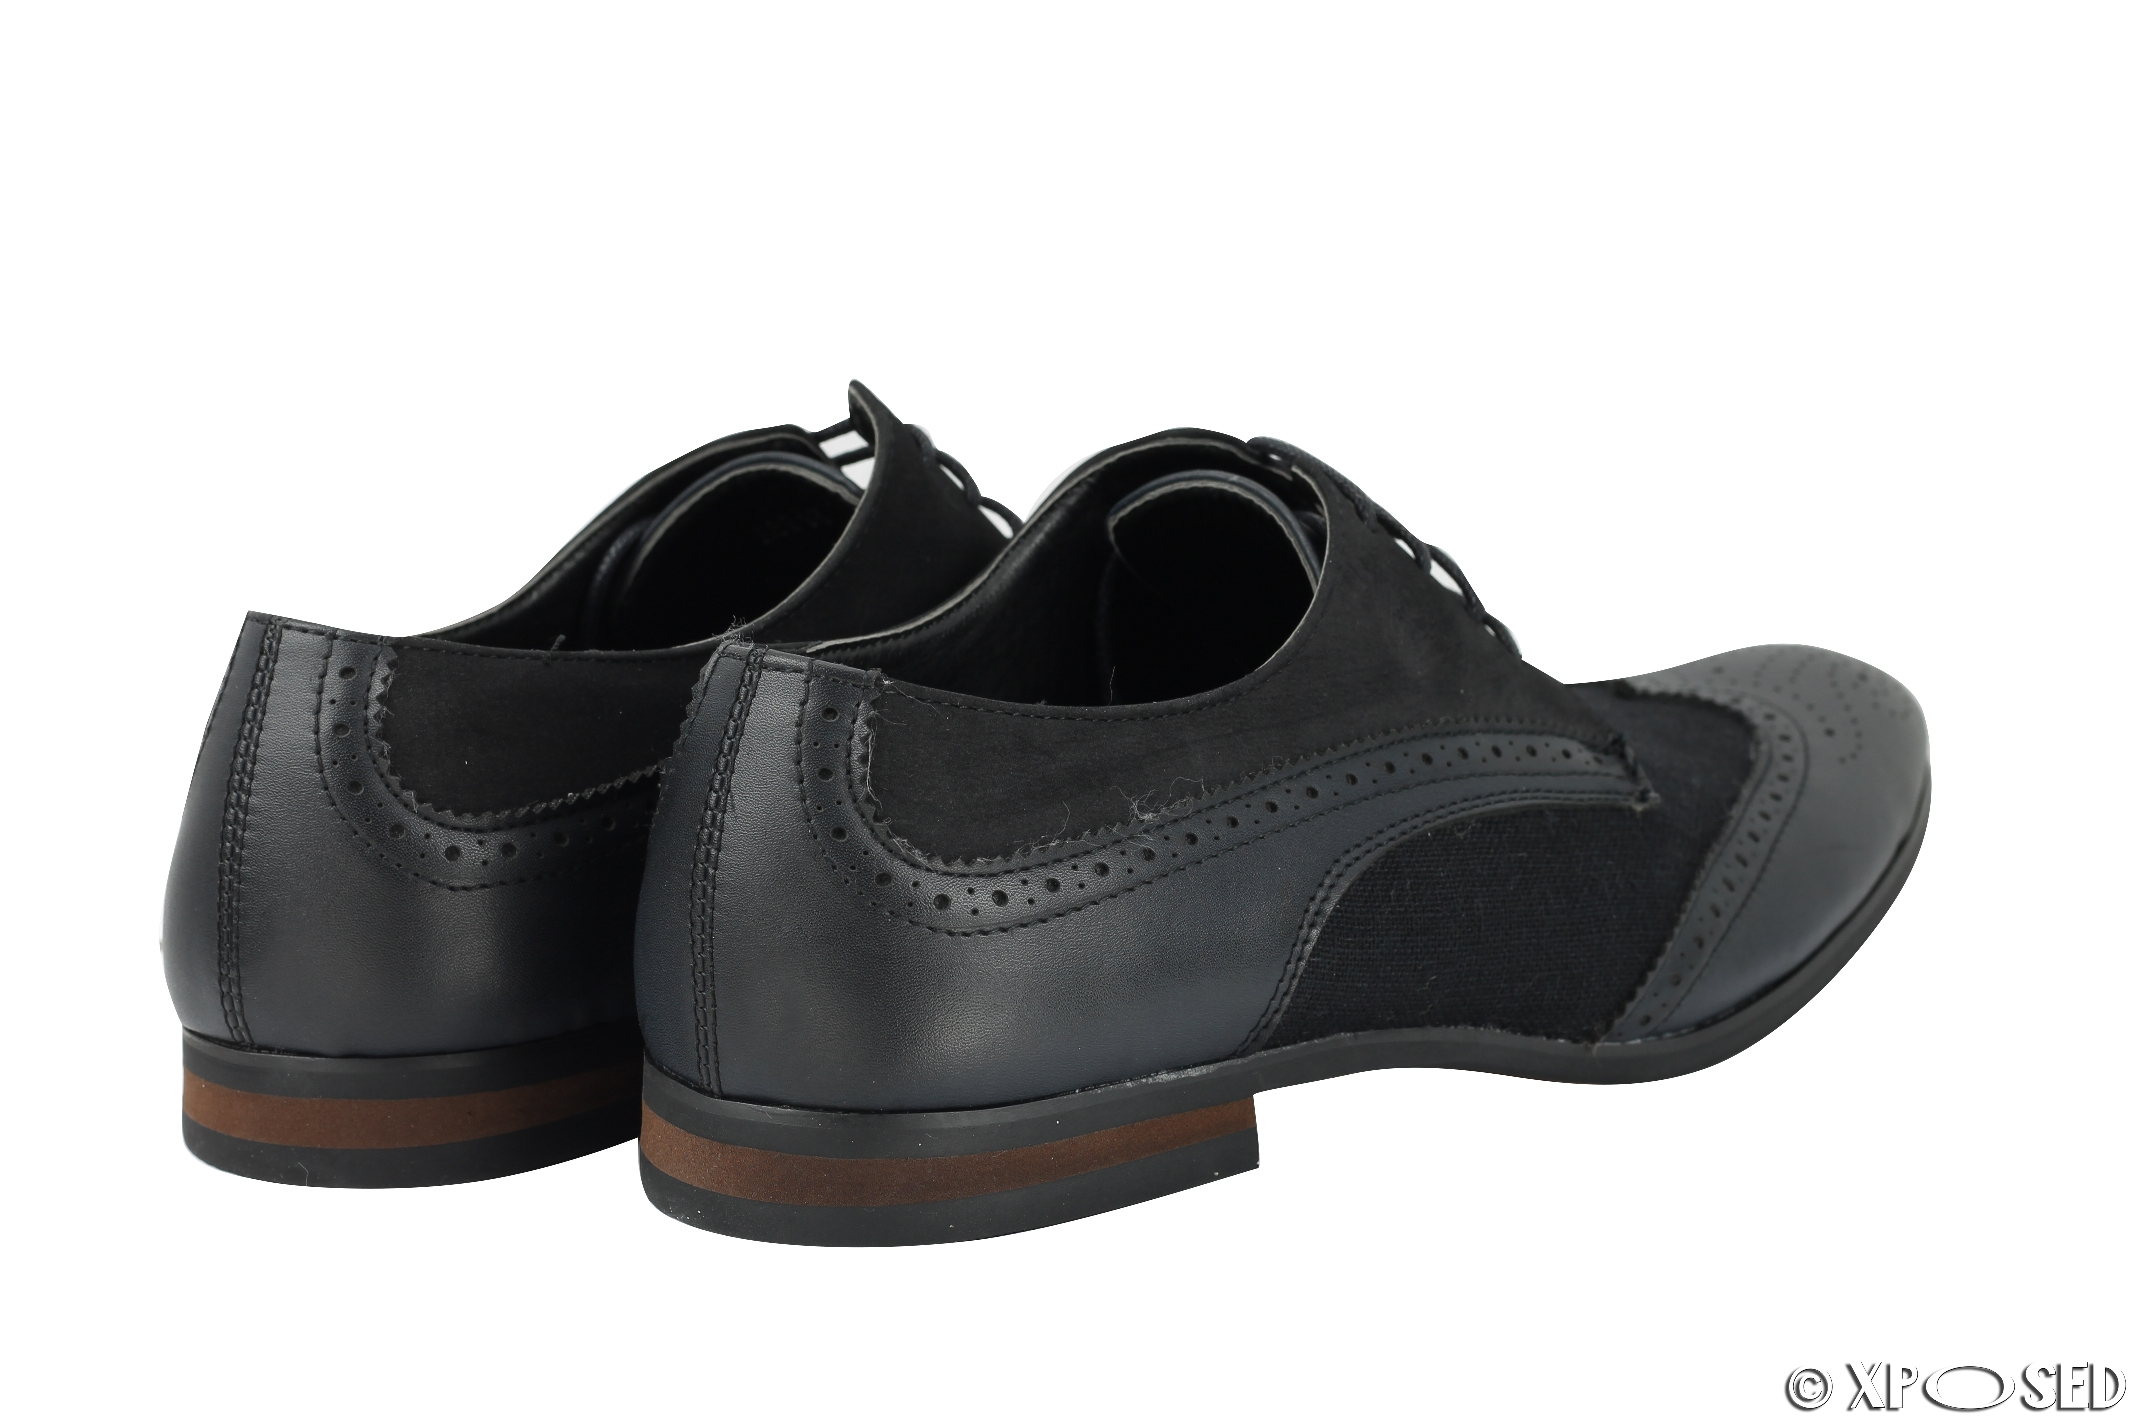 new mens shoes faux leather black navy formal brogue